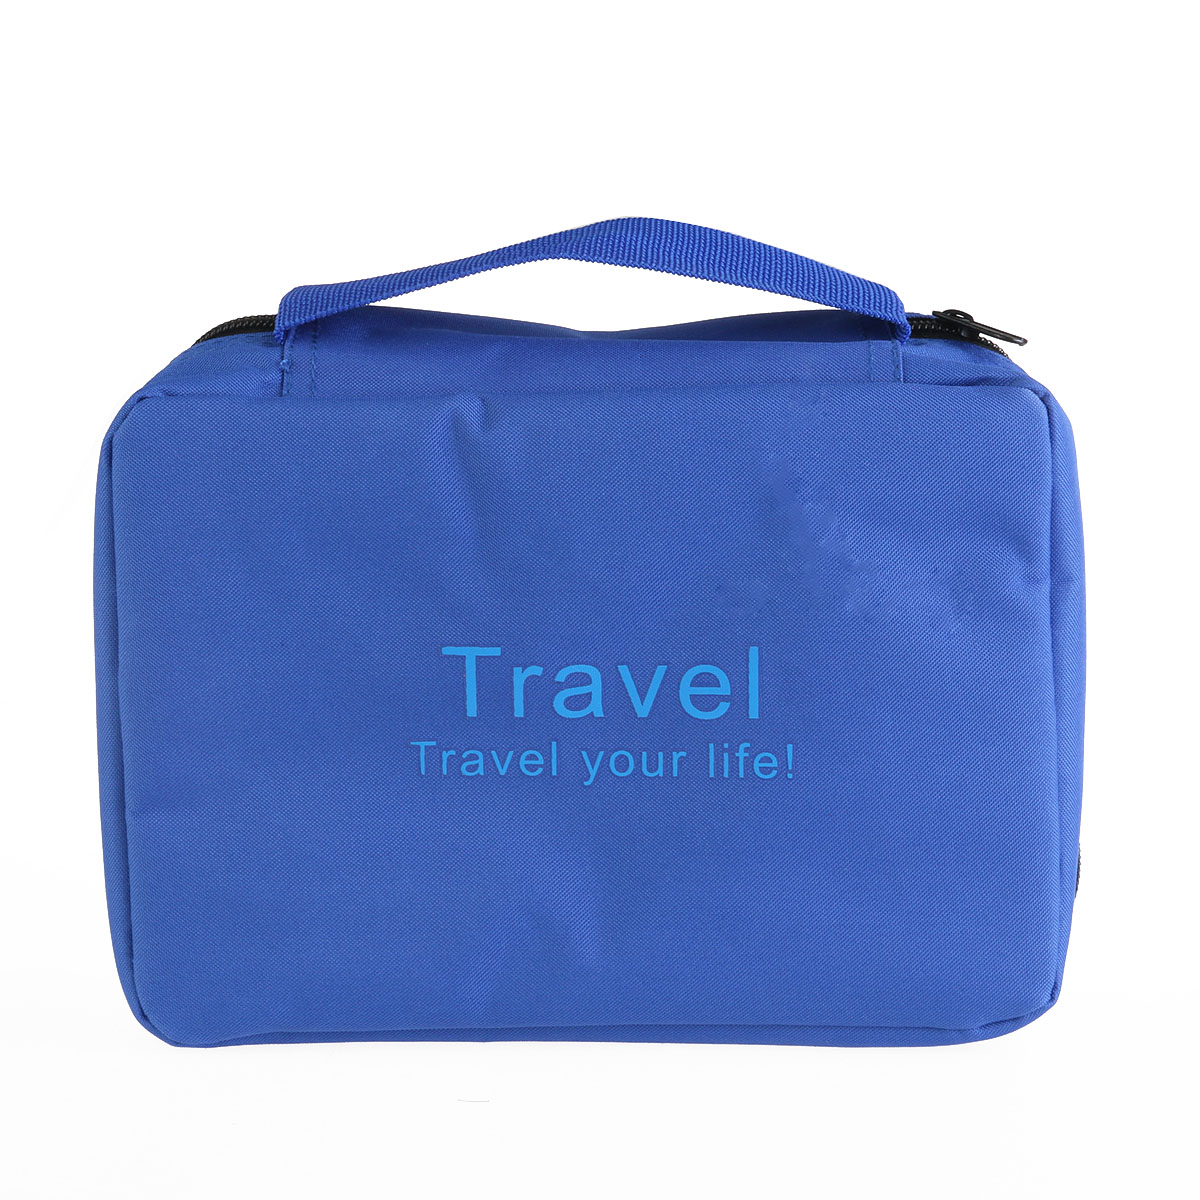 Portable Multi- Function Waterproof Hanging Wash Bag Toiletry Bag Travel Cosmetic Bag Pouch Organizer (Blue)